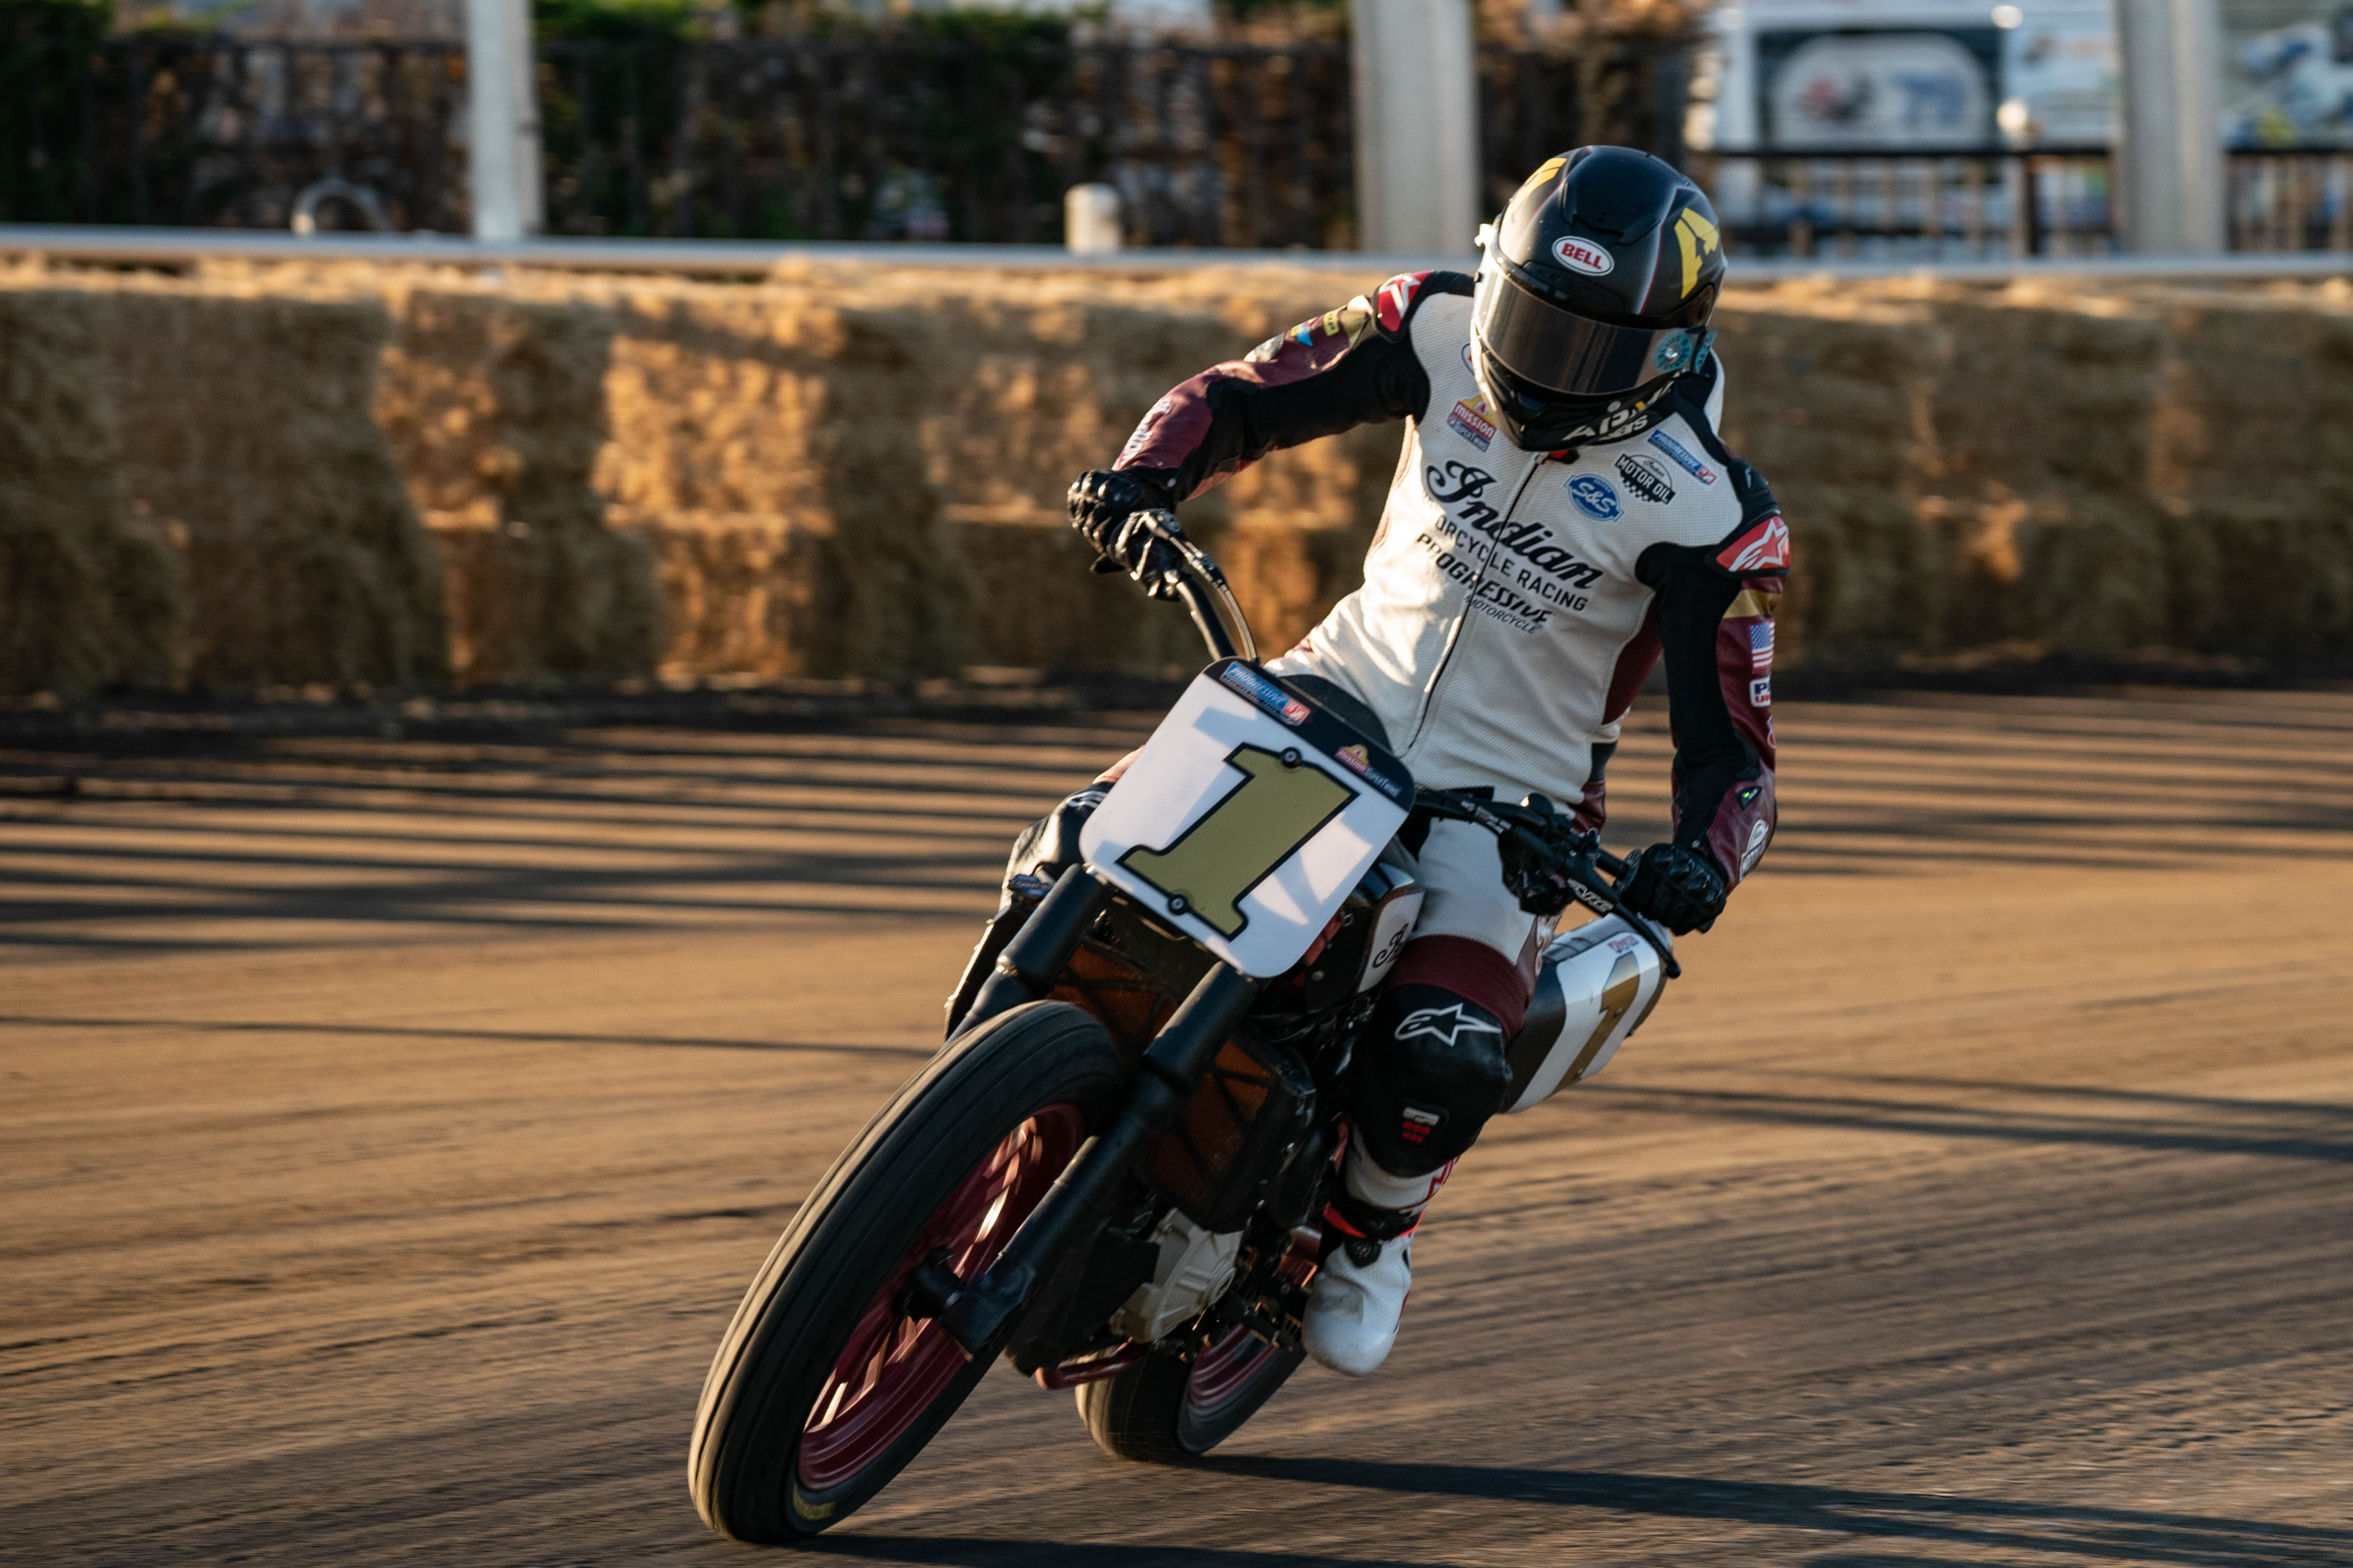 American Flat Track: Can the King Keep His Crown?